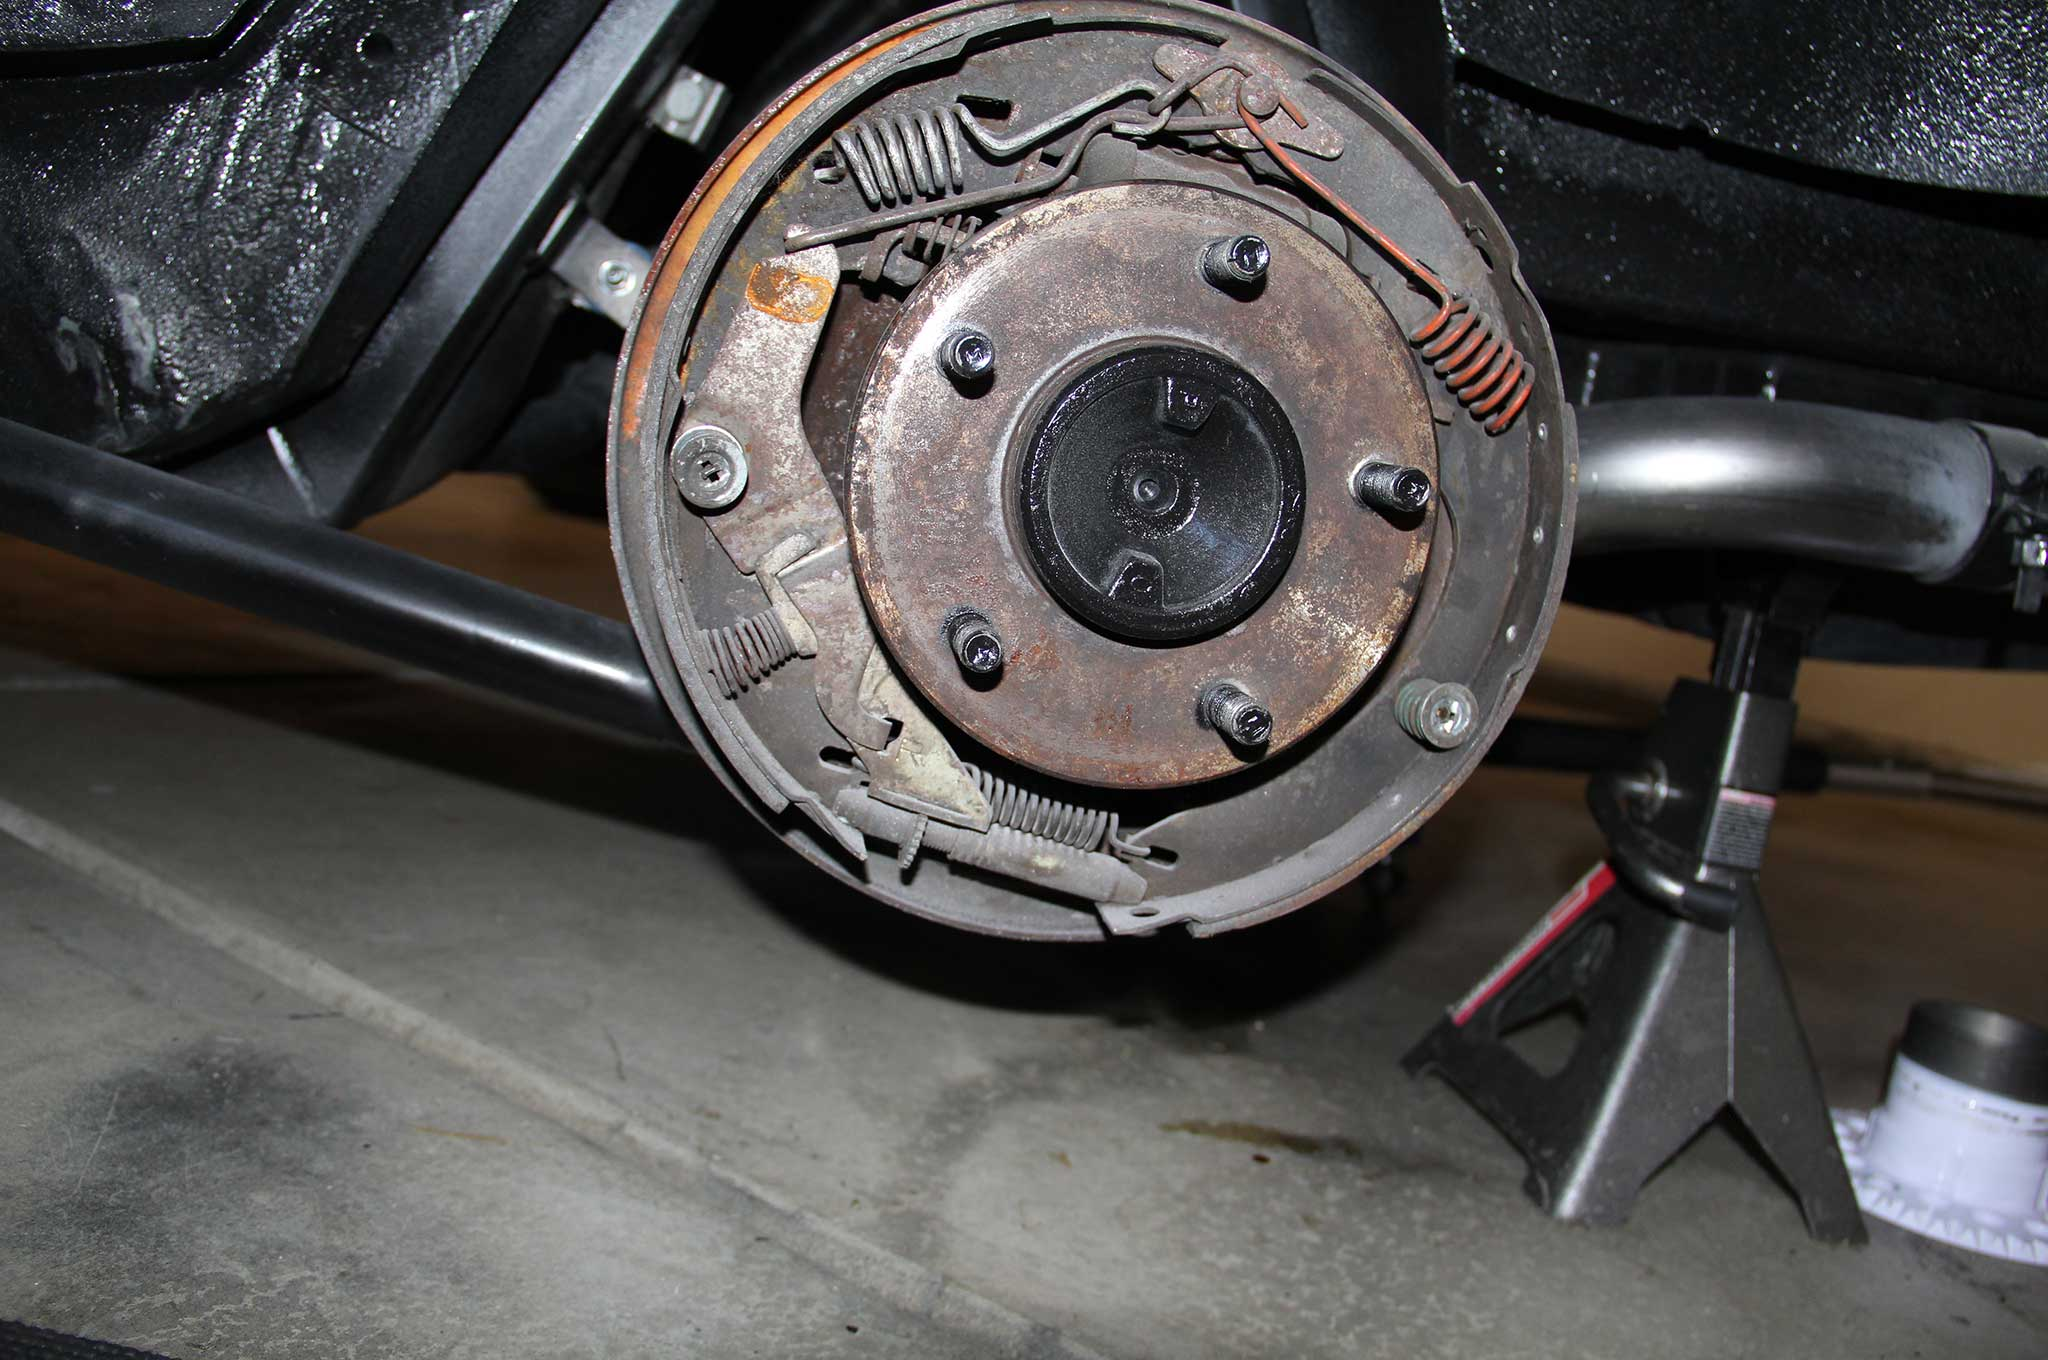 Gm Model Drum To Disc Brake Conversion Drum Cover Removed on 95 Chevy Rear Brake Diagram